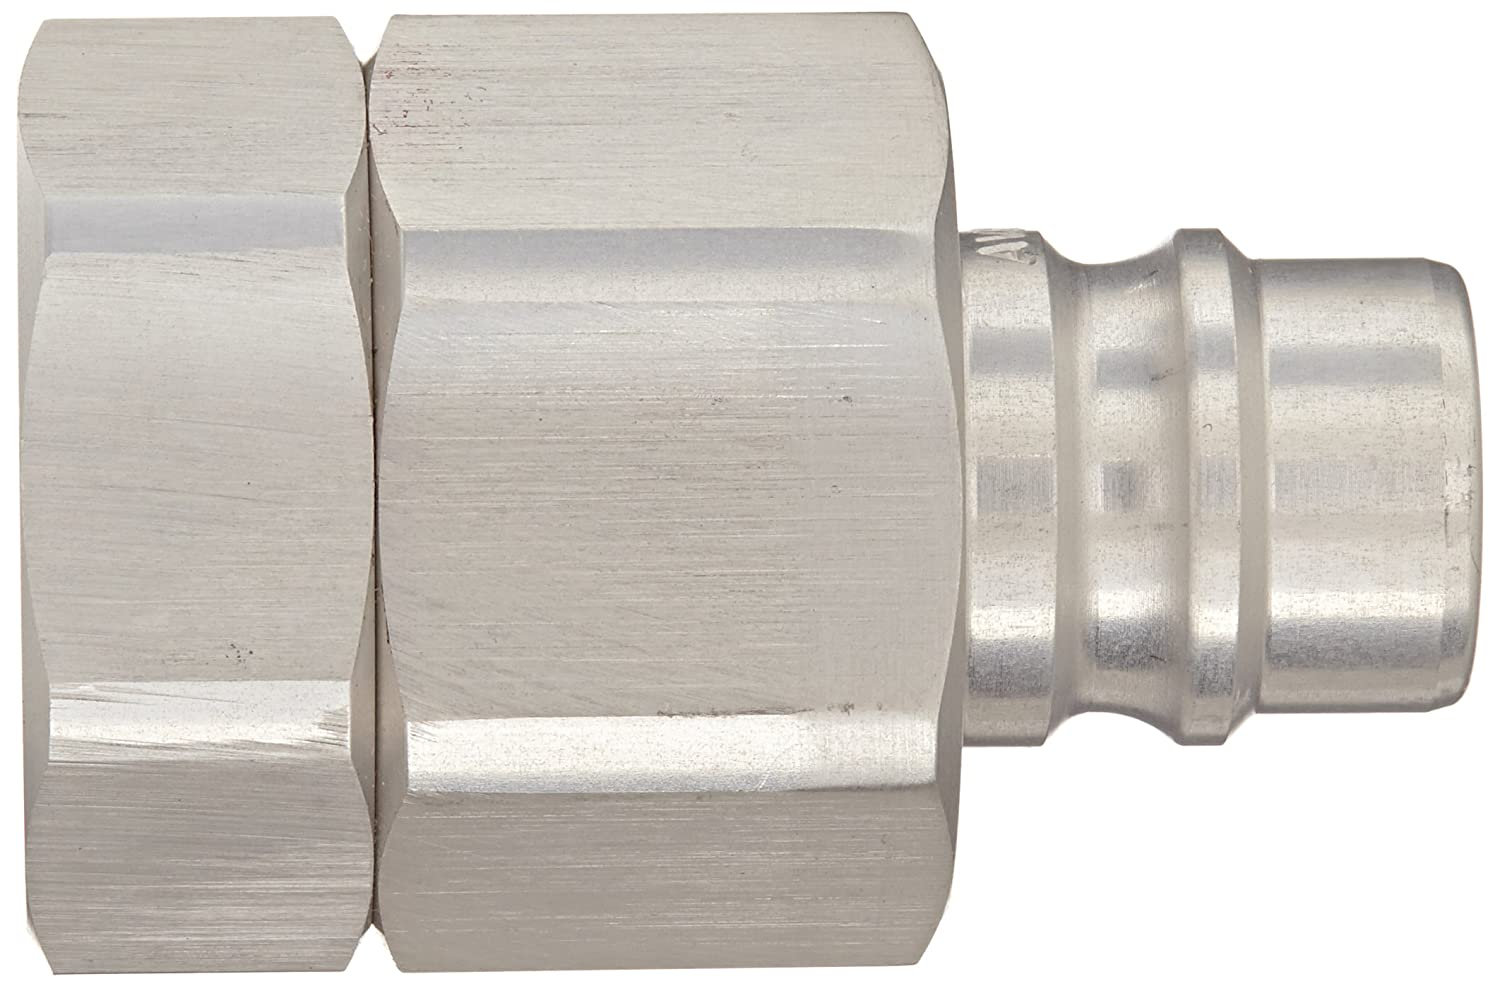 1//2 NPTF Female x 1//2 Coupling Size 1//2 NPTF Female x 1//2 Coupling Size Snap-Tite AVHN8-8F Aluminum H-Shape Quick-Disconnect Hose Coupling Nipple